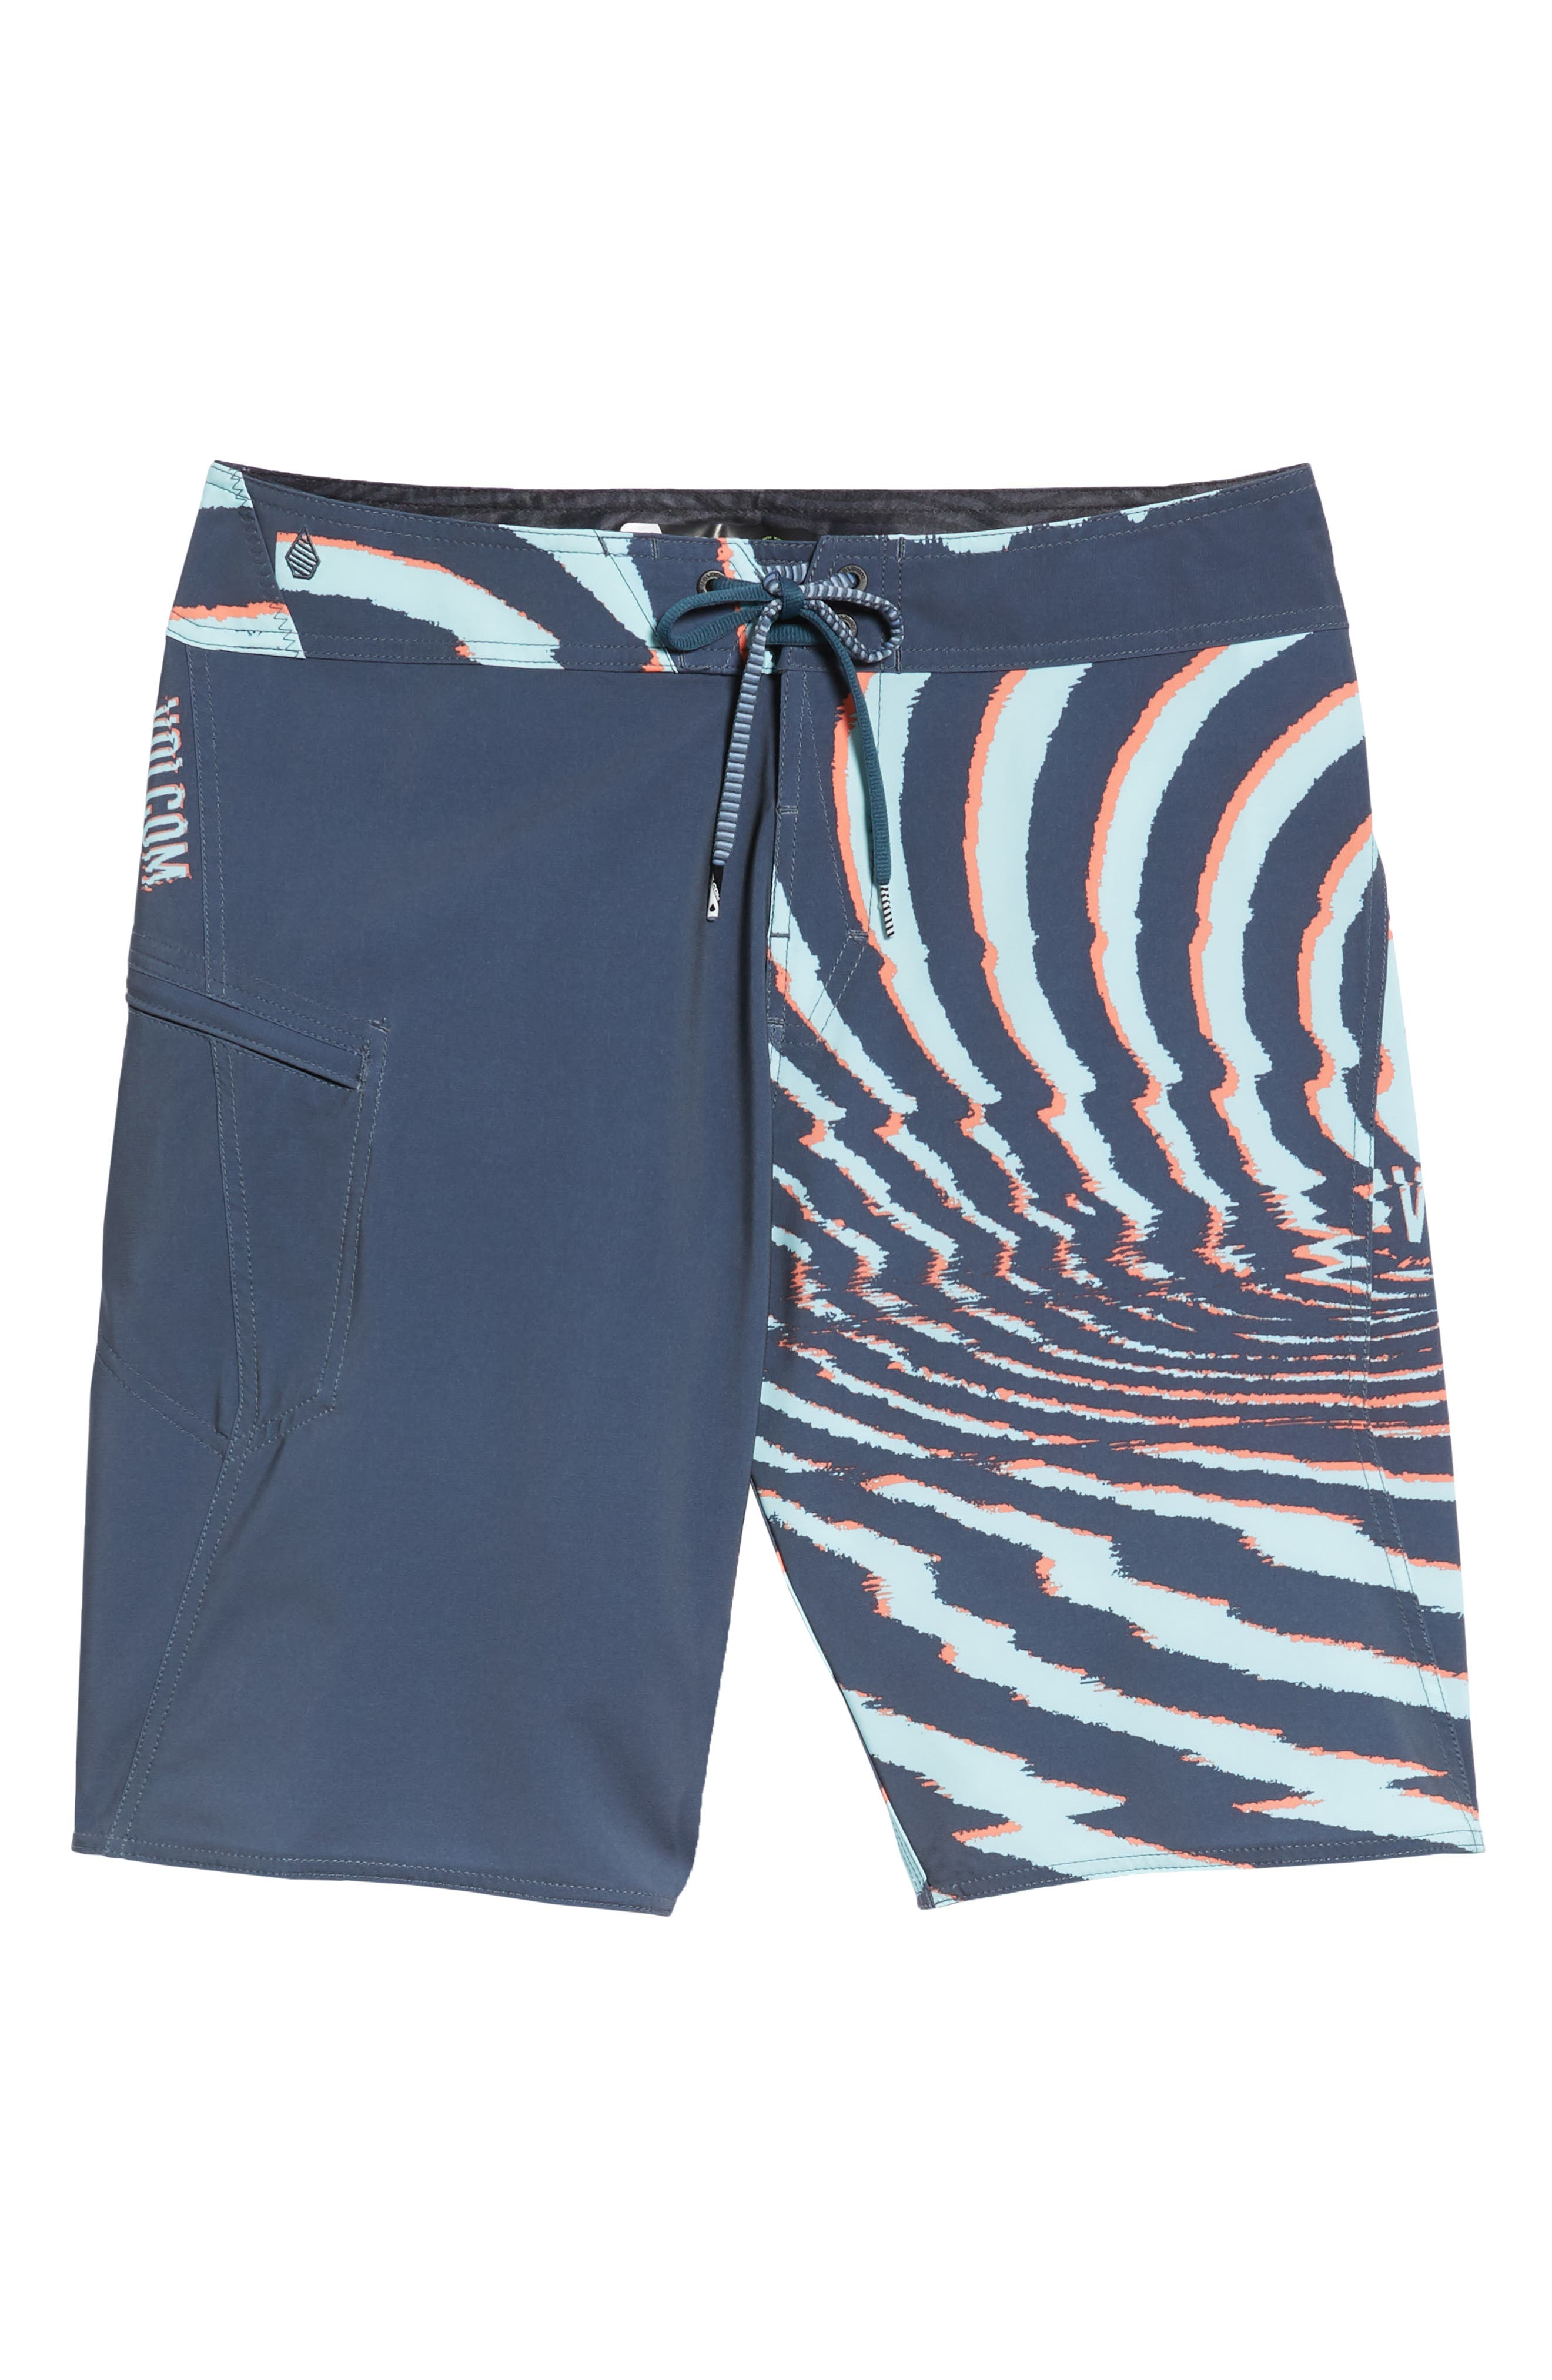 Lido Block Mod Board Shorts,                             Alternate thumbnail 6, color,                             MEDIUM BLUE